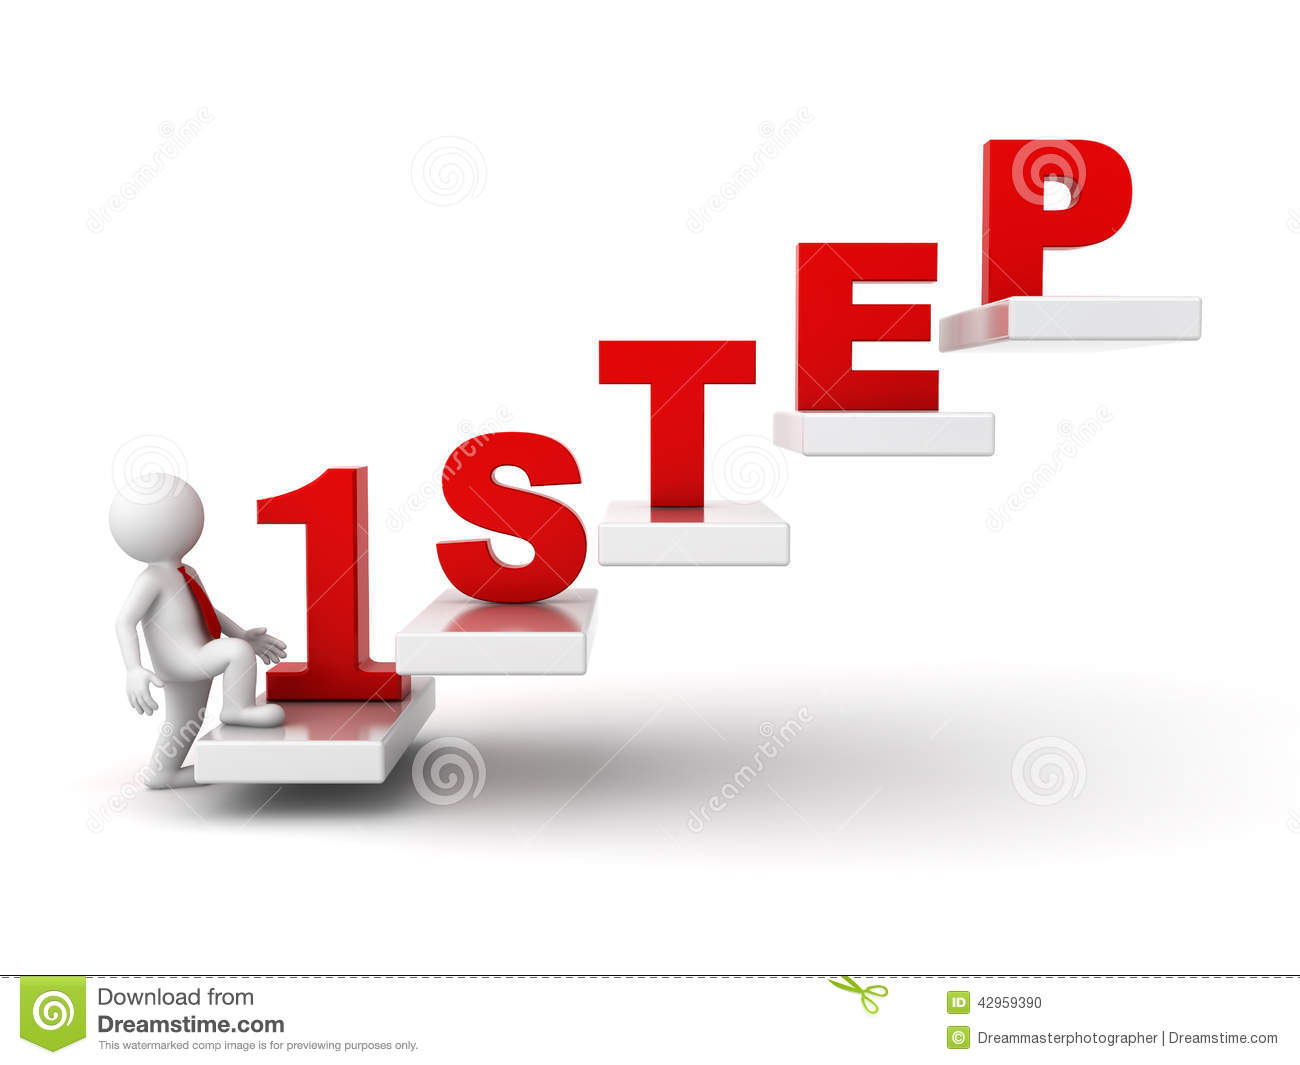 Steps to success station. 5 clipart step